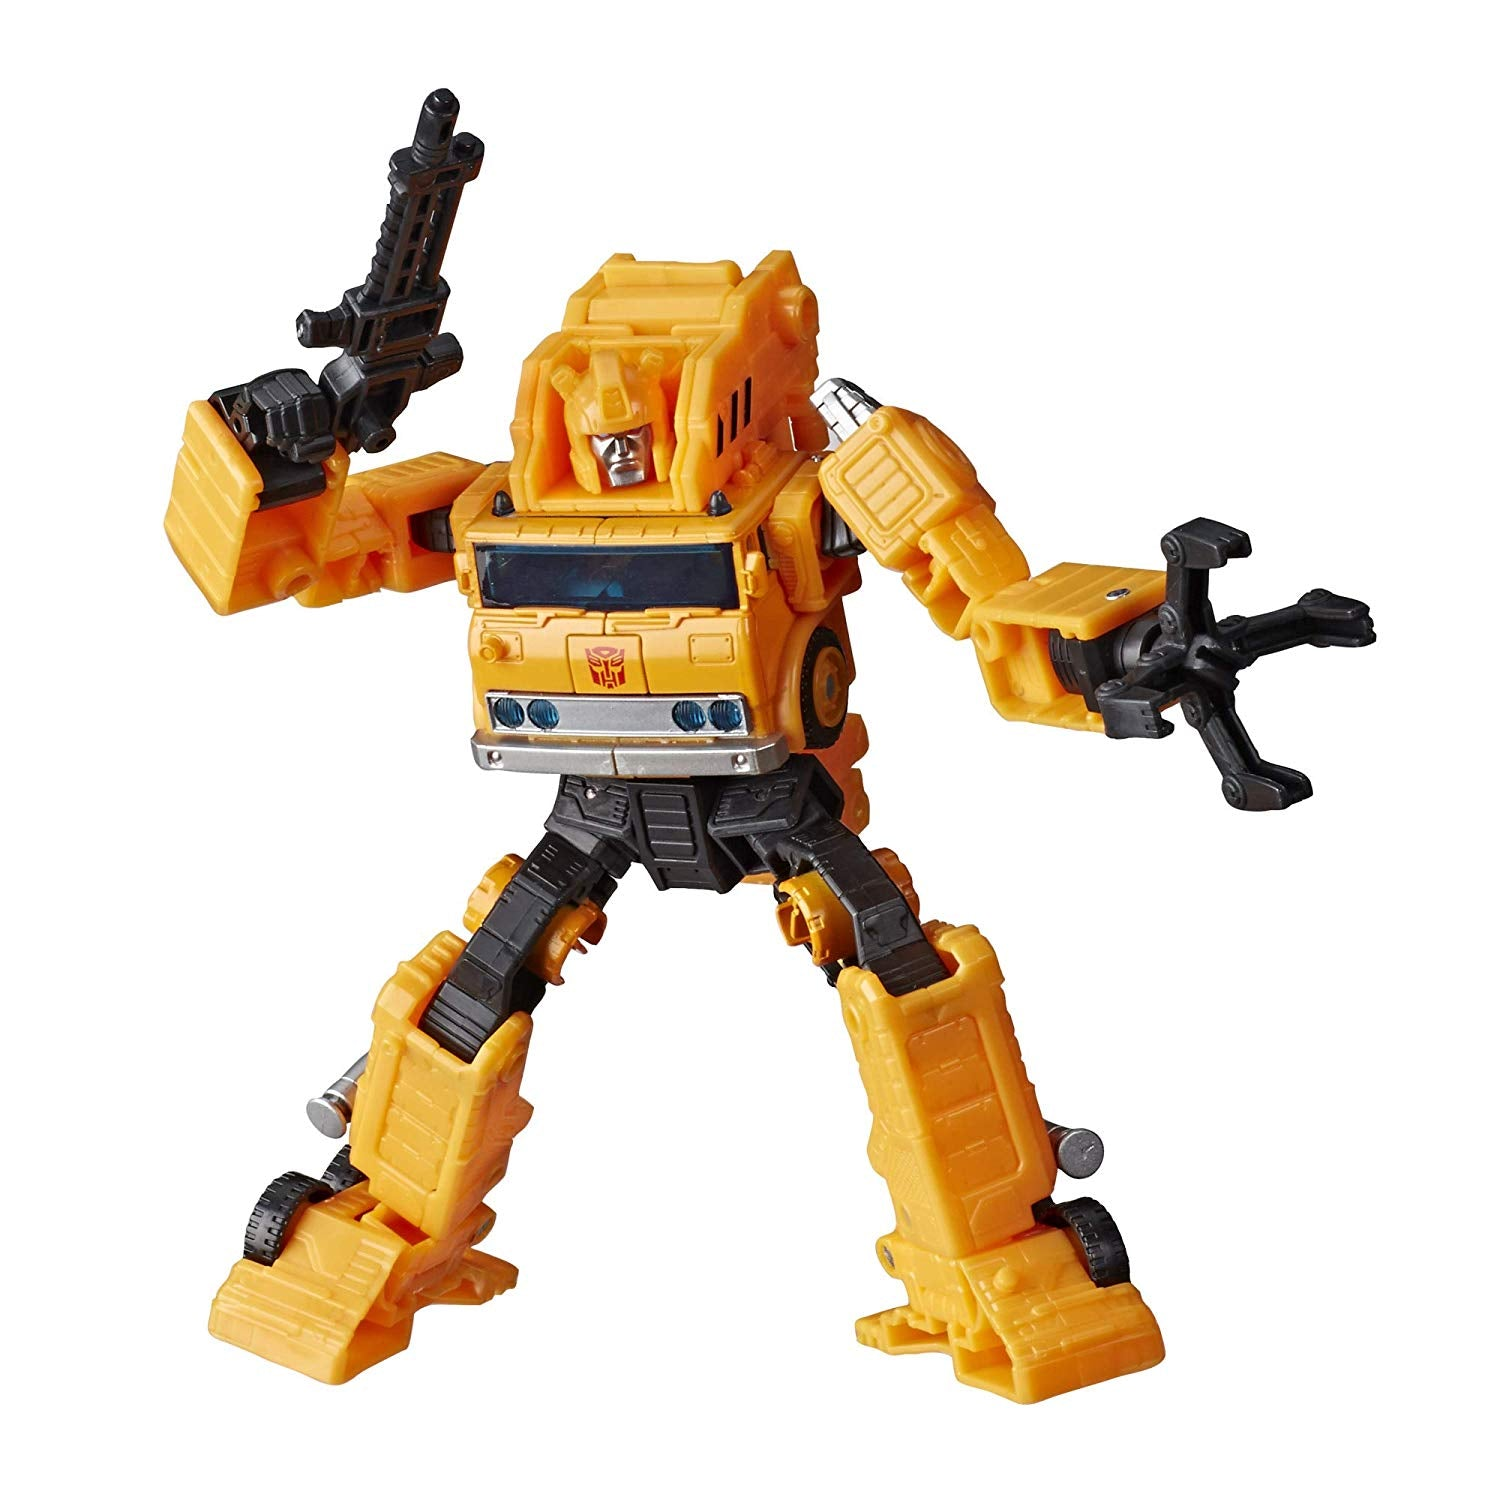 Transformers Generations - War for Cybertron: Earthrise - Grapple Action Figure (WFC-E10)